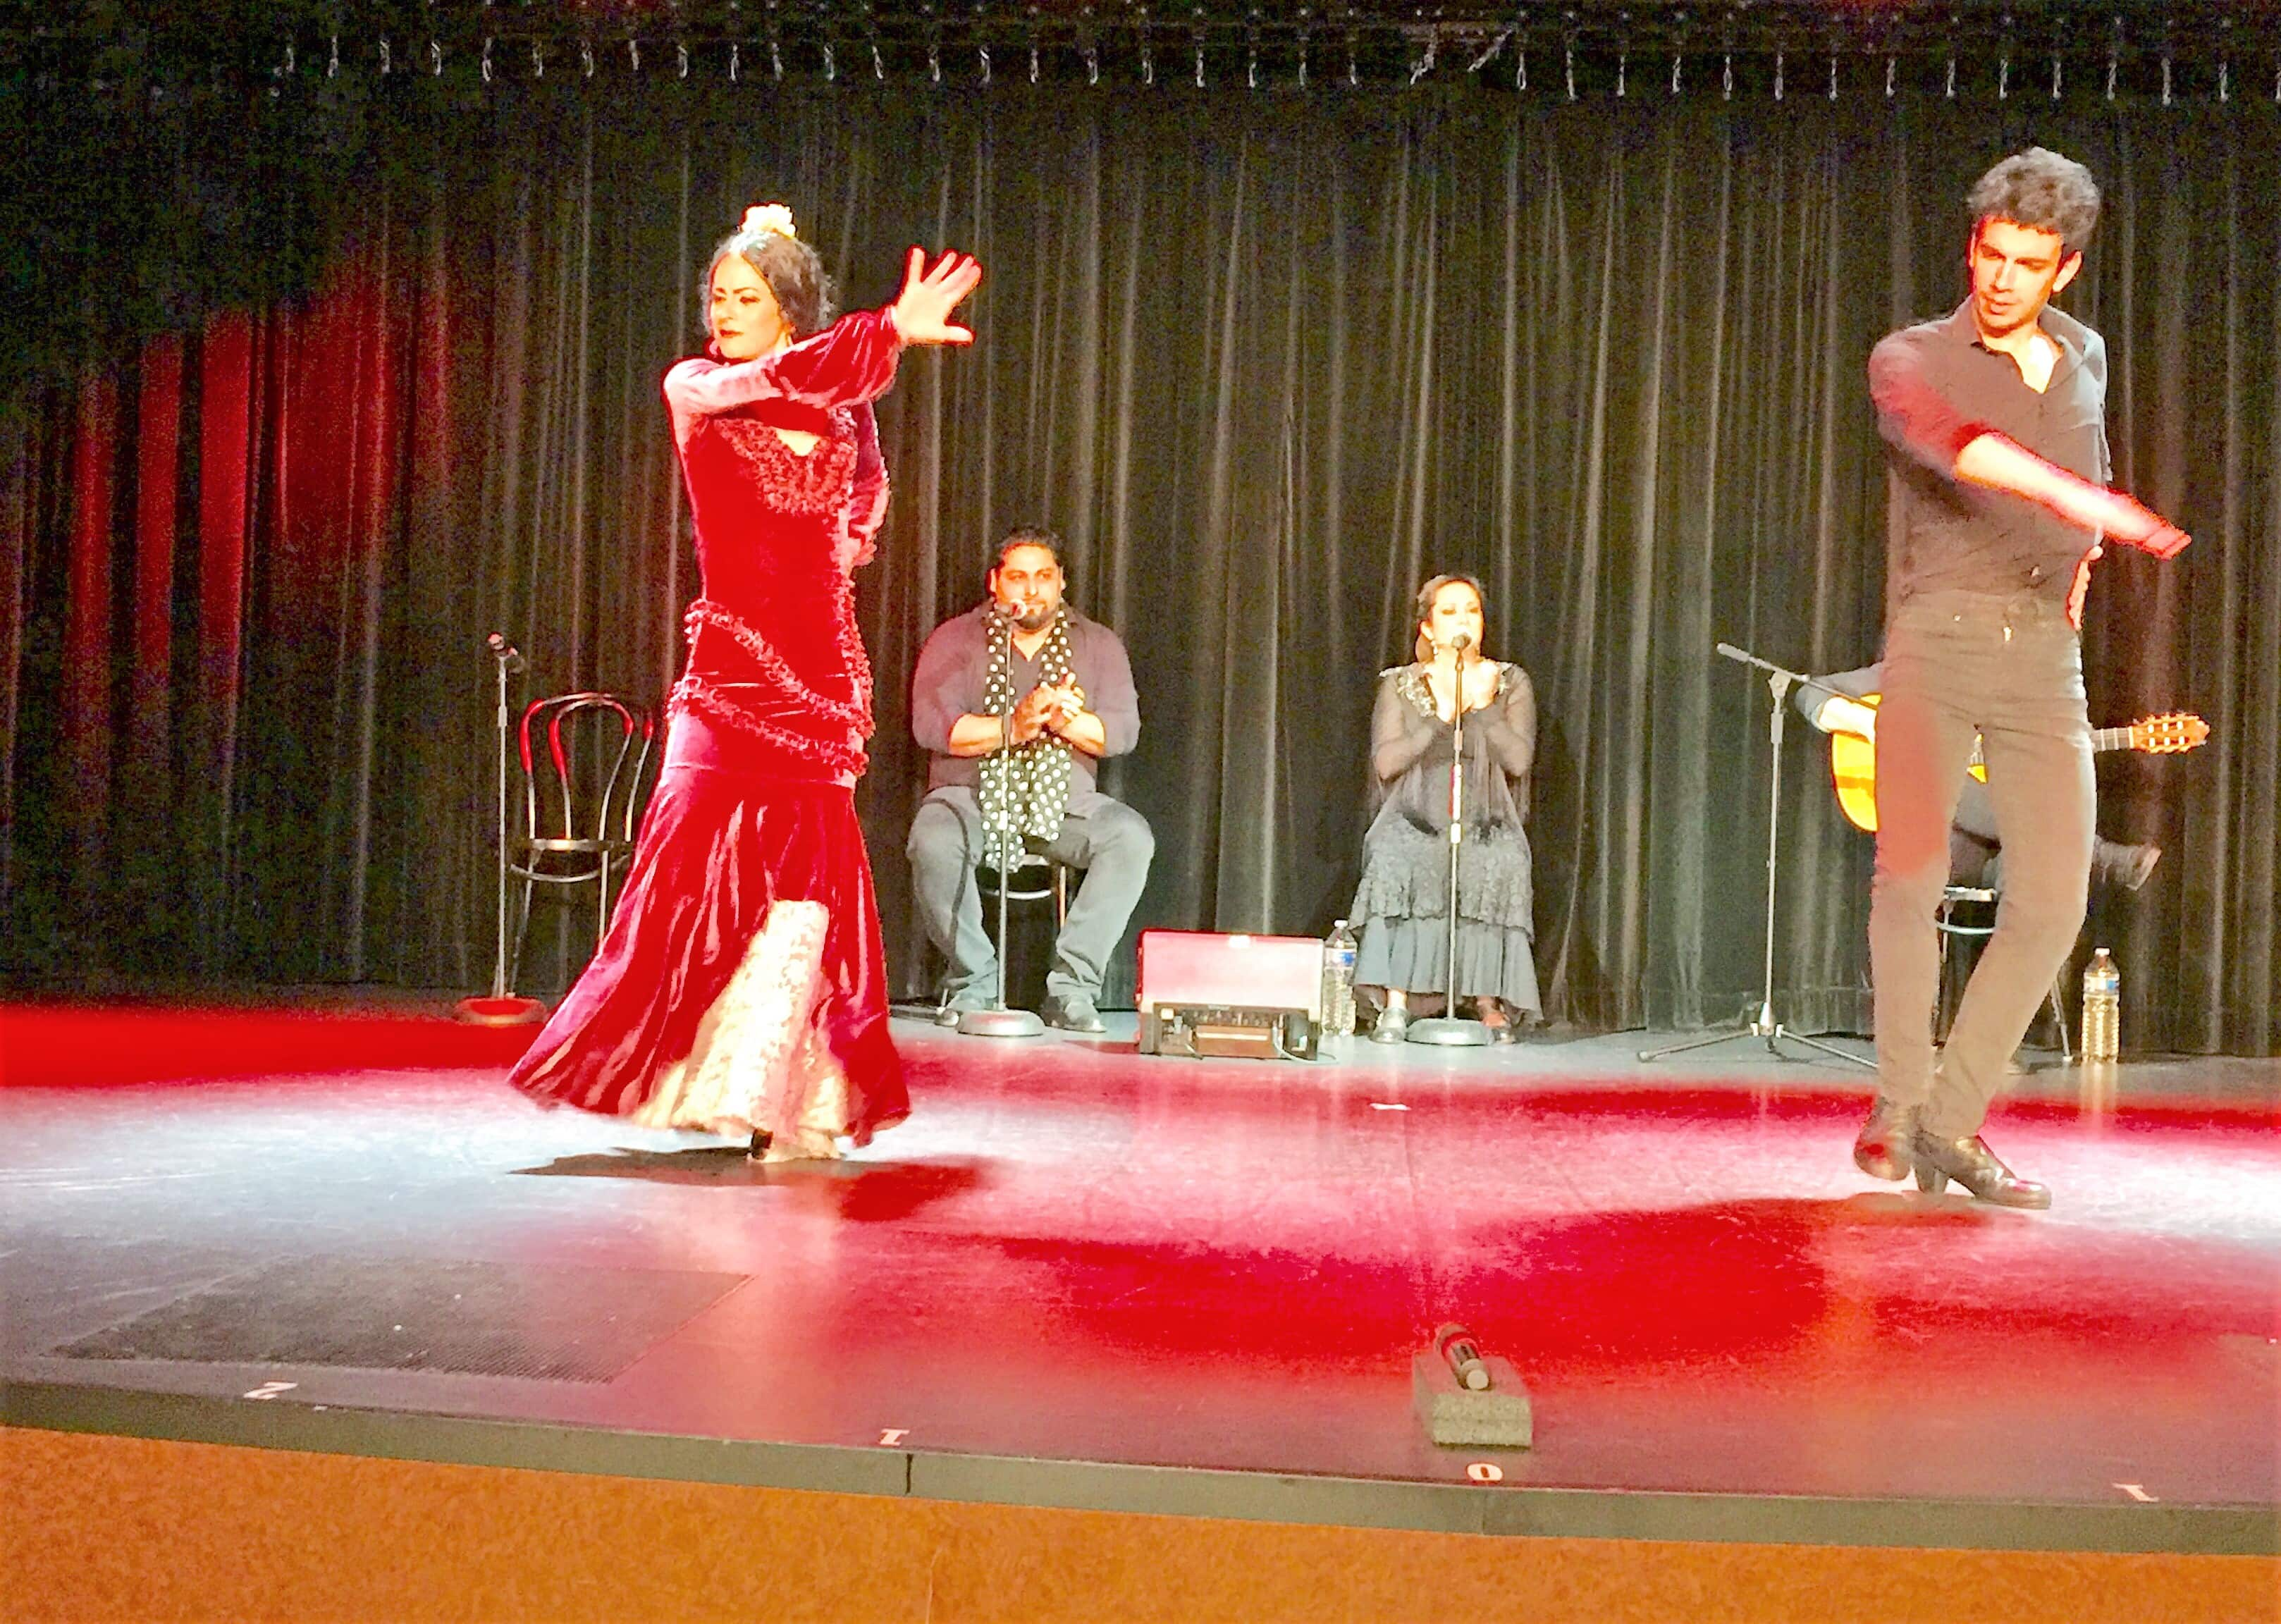 Local Flamenco dancers came onboard to entertain the guests.